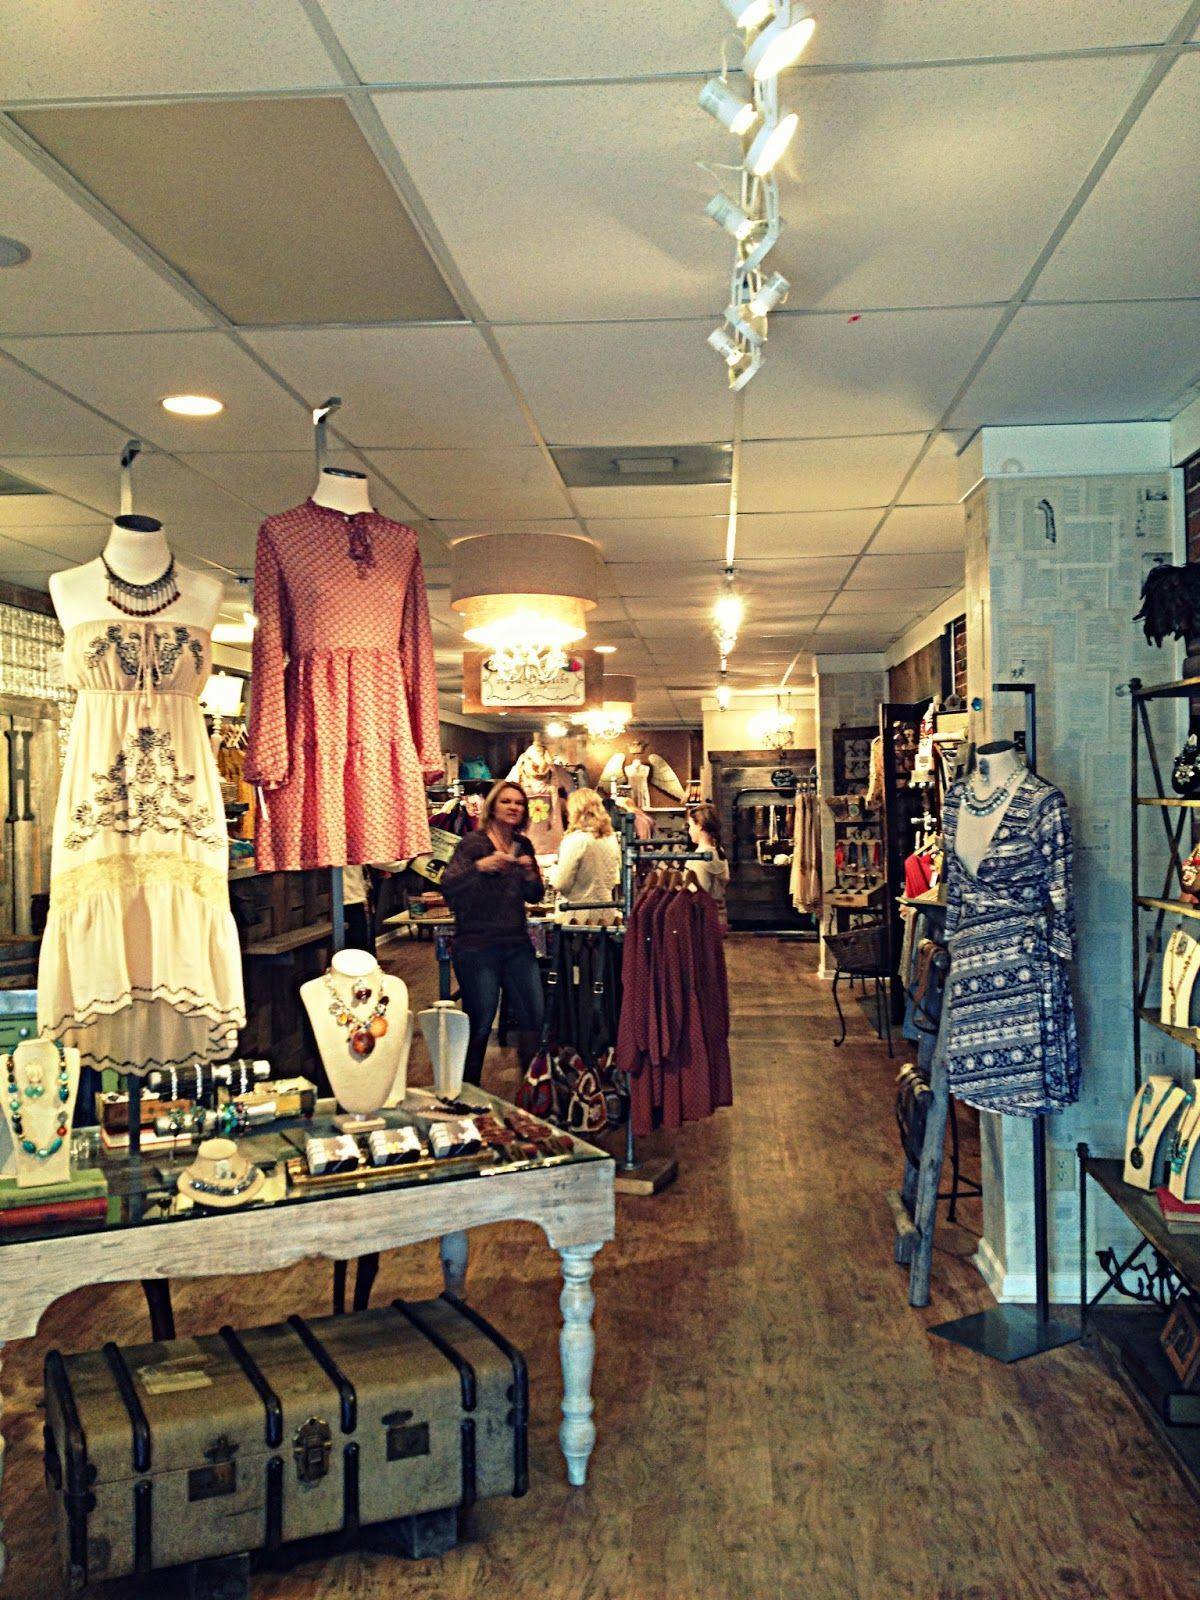 Boutiques In Blue Ridge. Does your consignment shop look so intriguing when customers first step in? hopes so! After all, you want to tempt but not overwhelm folks to start with. (Who knows what the vintage trunk under the entry table holds? Could be spare store supplies!) In Blue Ridge. Does your consignment shop look so intriguing when customers first step in?  hopes so! After all, you want to tempt but not overwhelm folks to start with. (Who knows what the vintage trunk under the entry table holds? Could be spare store supplies!)Does your consignment shop look so intriguing when customers first step in?  hopes s...